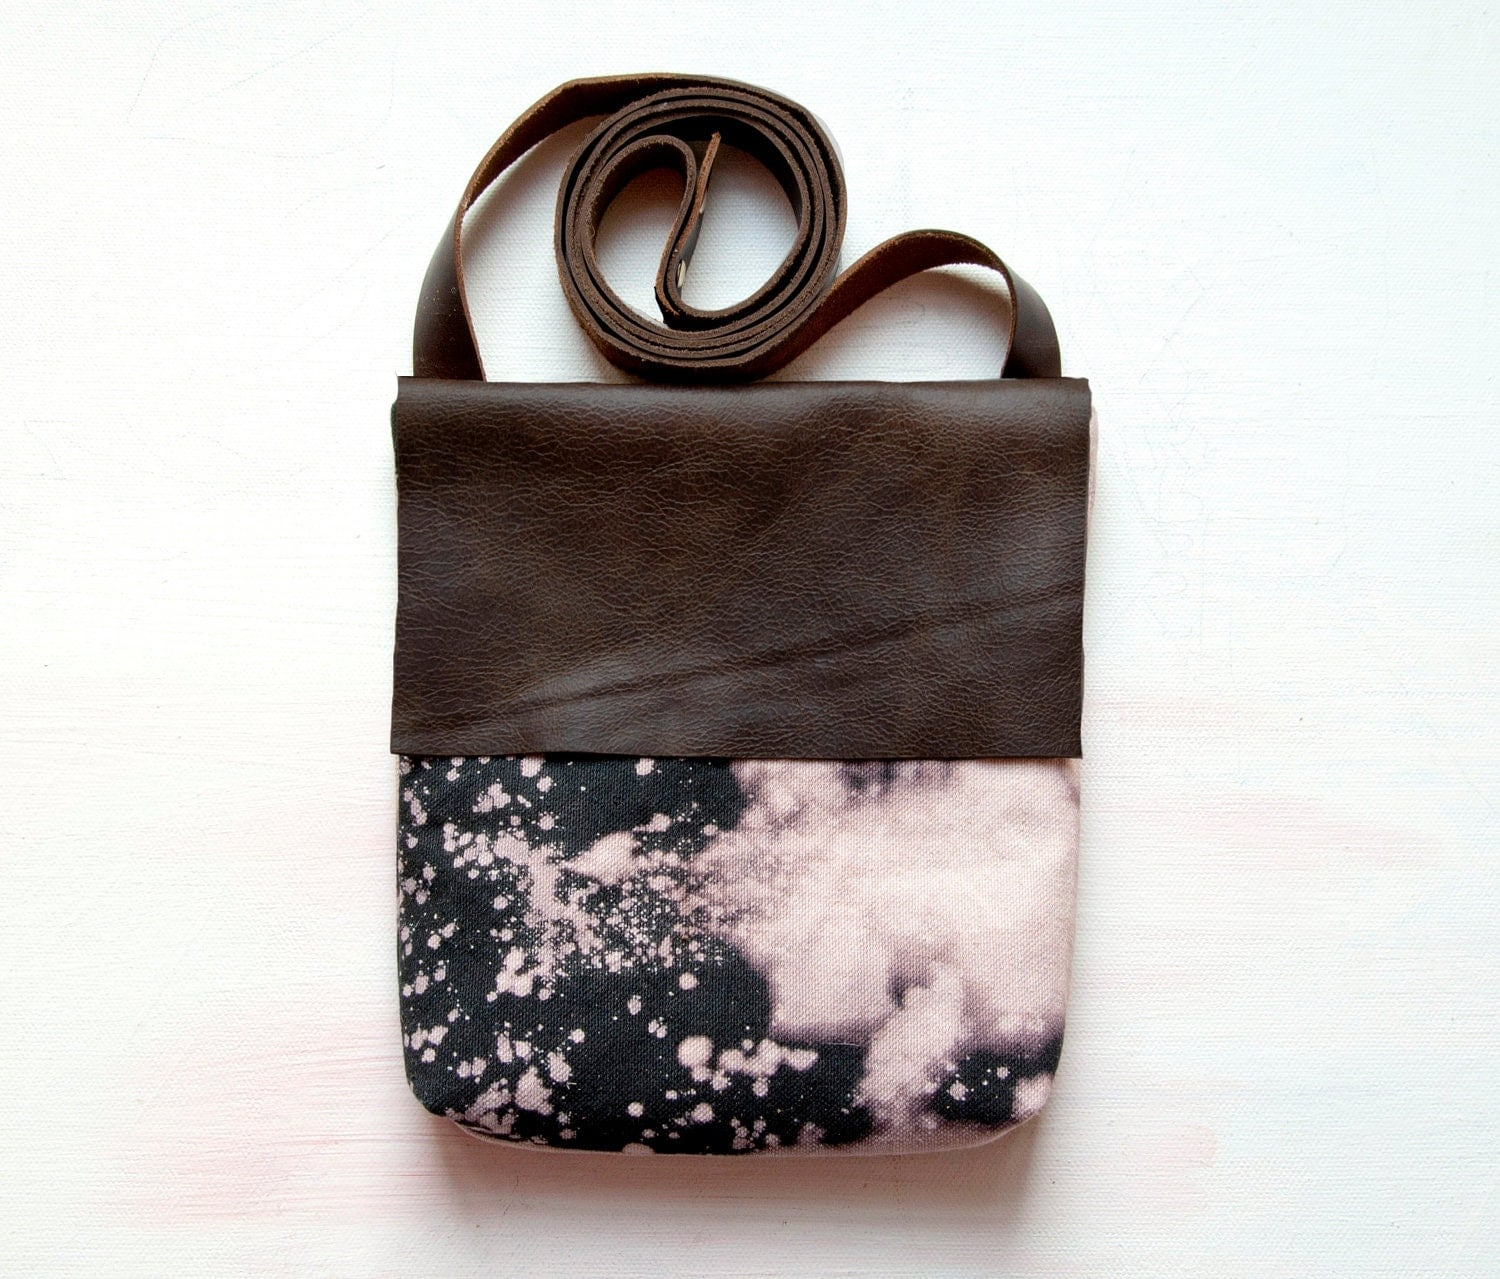 H A N D DYED and Leather Cross Body Shoulder Purse. Bleach black and Brown Leather Bag - GiftShopBrooklyn